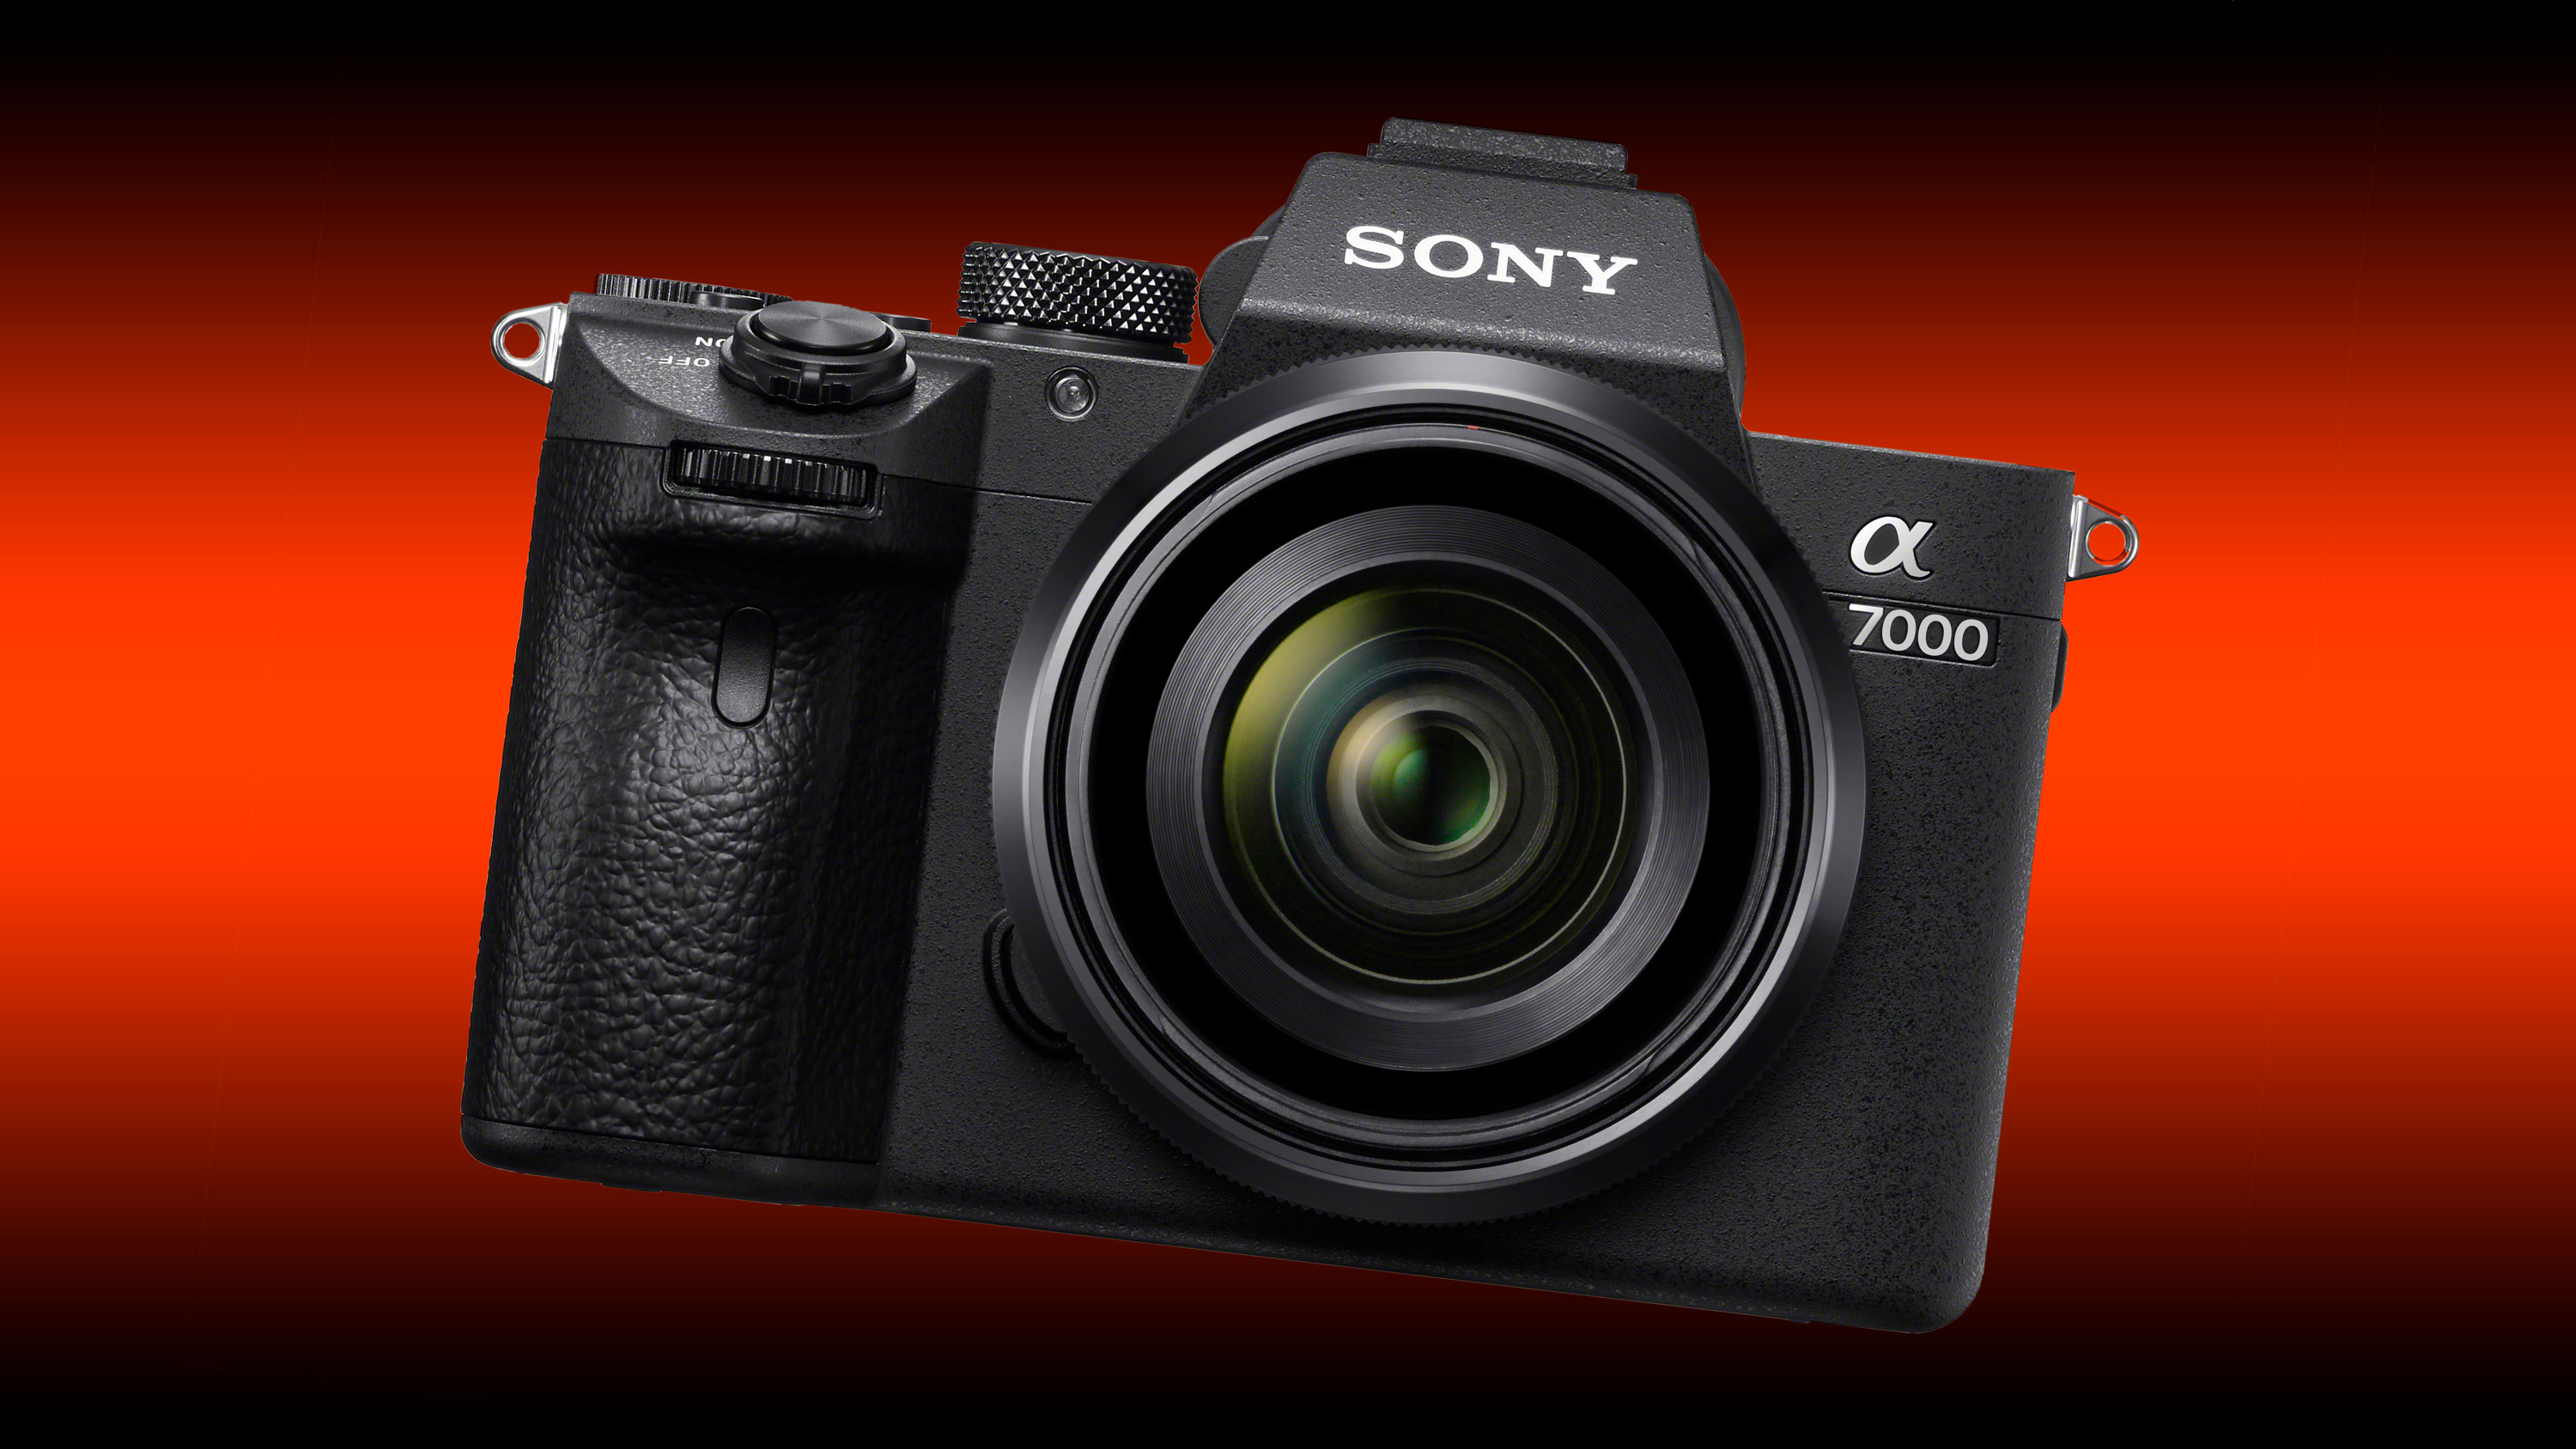 Sony Alpha A7000 rumors: what we want to see from the new Sony APS-C camera